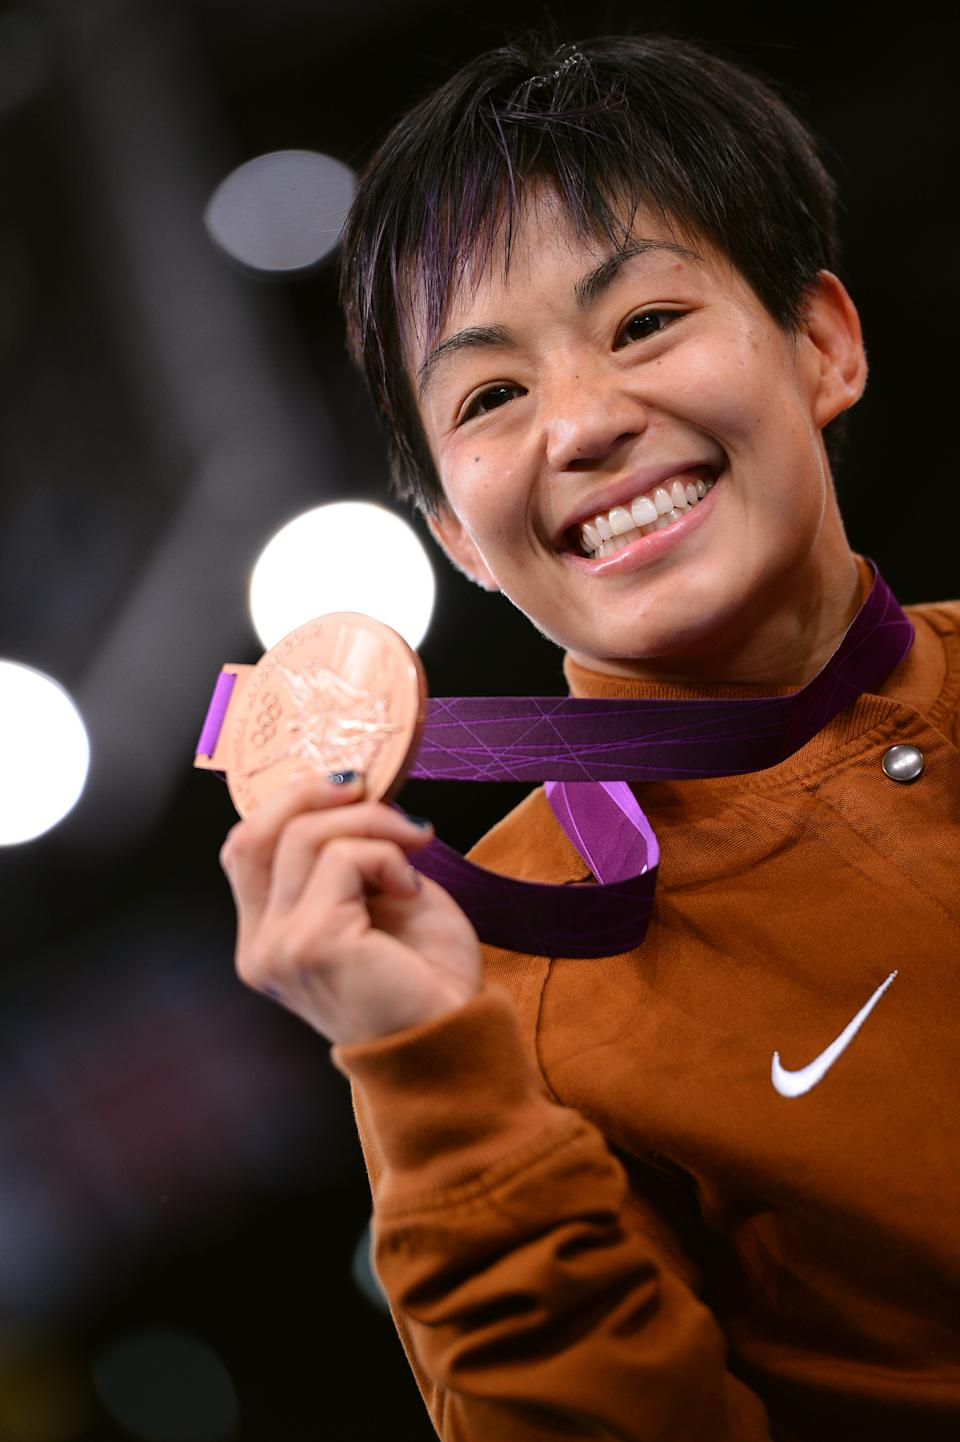 """Bronze medalist A <a href=""""http://sports.yahoo.com/olympics/wrestling/clarissa-kyoko-mei-ling-chun-1130413/"""" data-ylk=""""slk:Clarissa Kyoko Mei Ling Chun"""" class=""""link rapid-noclick-resp"""">Clarissa Kyoko Mei Ling Chun</a> of the United States stands on the podium in the Women's Freestyle 48 kg Wrestling on Day 12 of the London 2012 Olympic Games at ExCeL on August 8, 2012 in London, England. (Photo by Lars Baron/Getty Images)"""